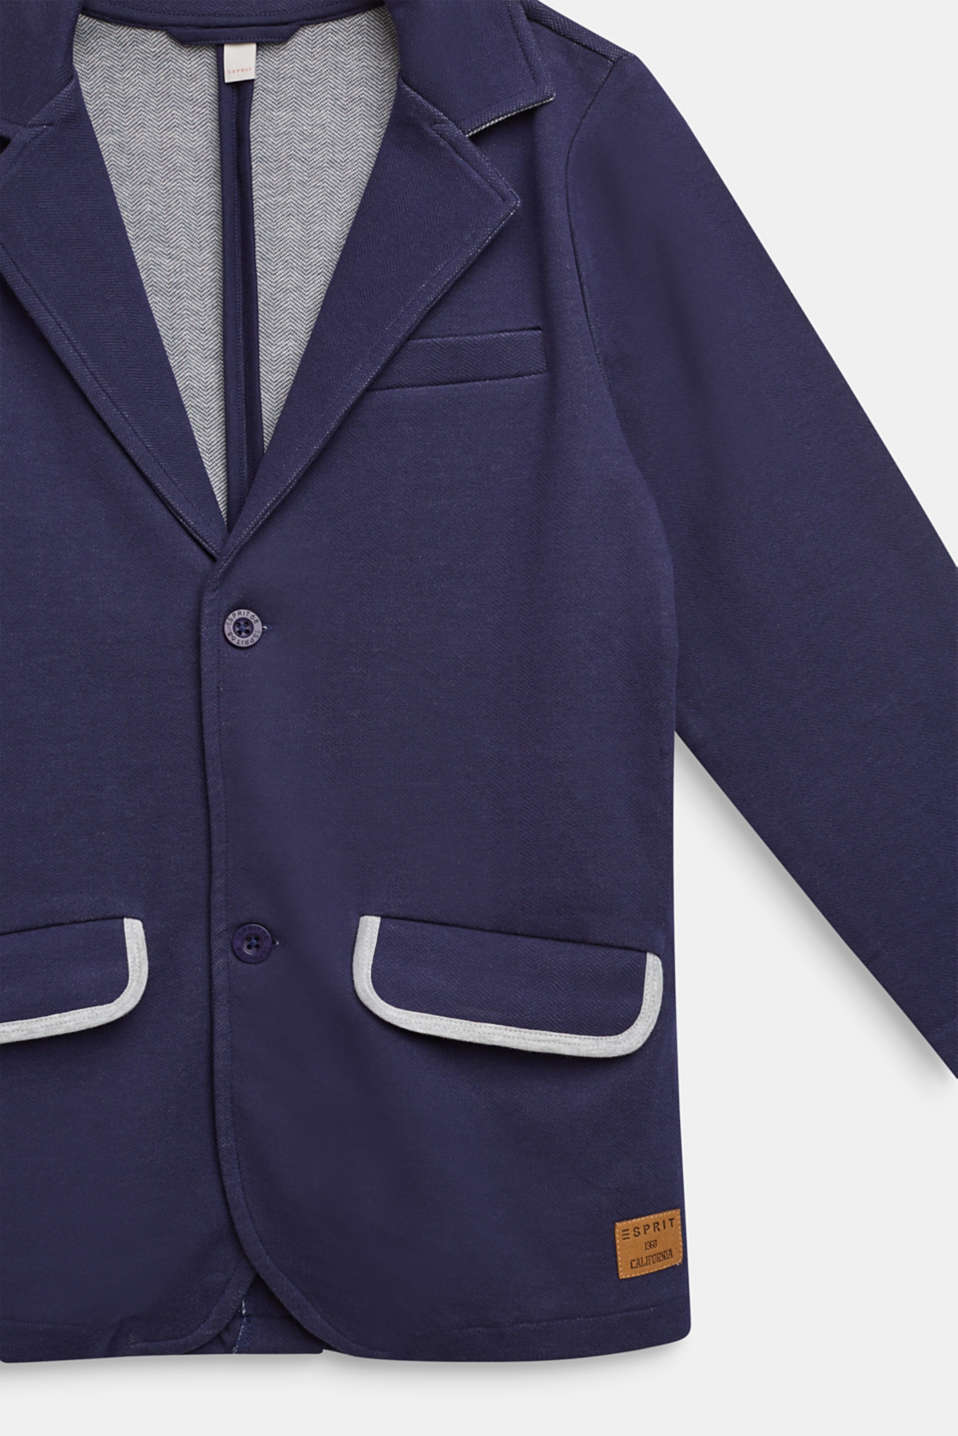 Sweatshirt blazer with piped pockets, LCULTRAMARINE, detail image number 2